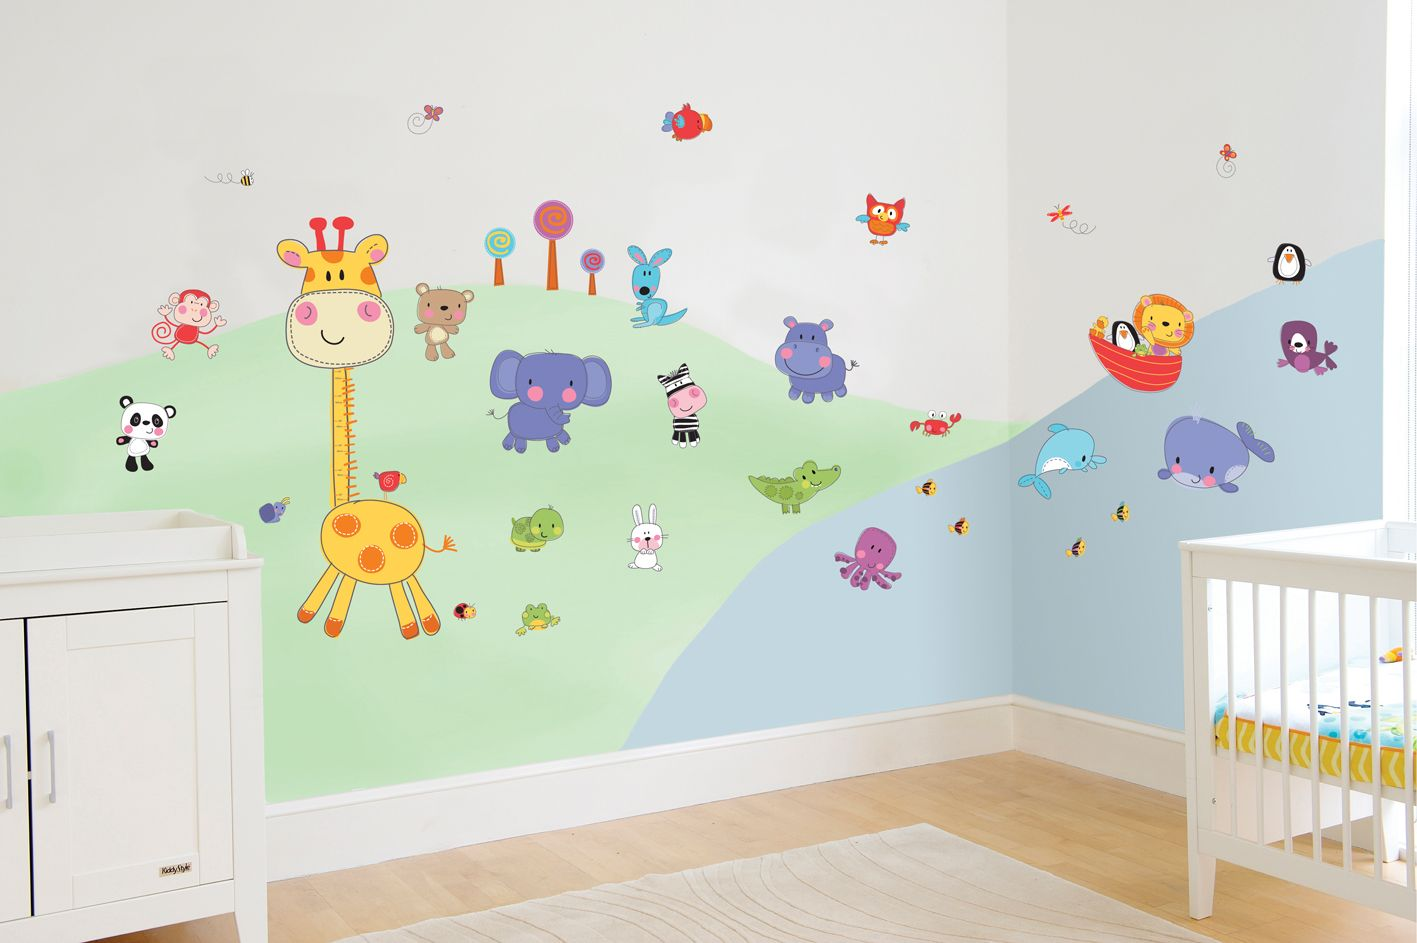 Fisher price nursery wall stickers creative ideas for decorating fisher price nursery wall stickers creative ideas for decorating the nursery by funtosee amipublicfo Gallery